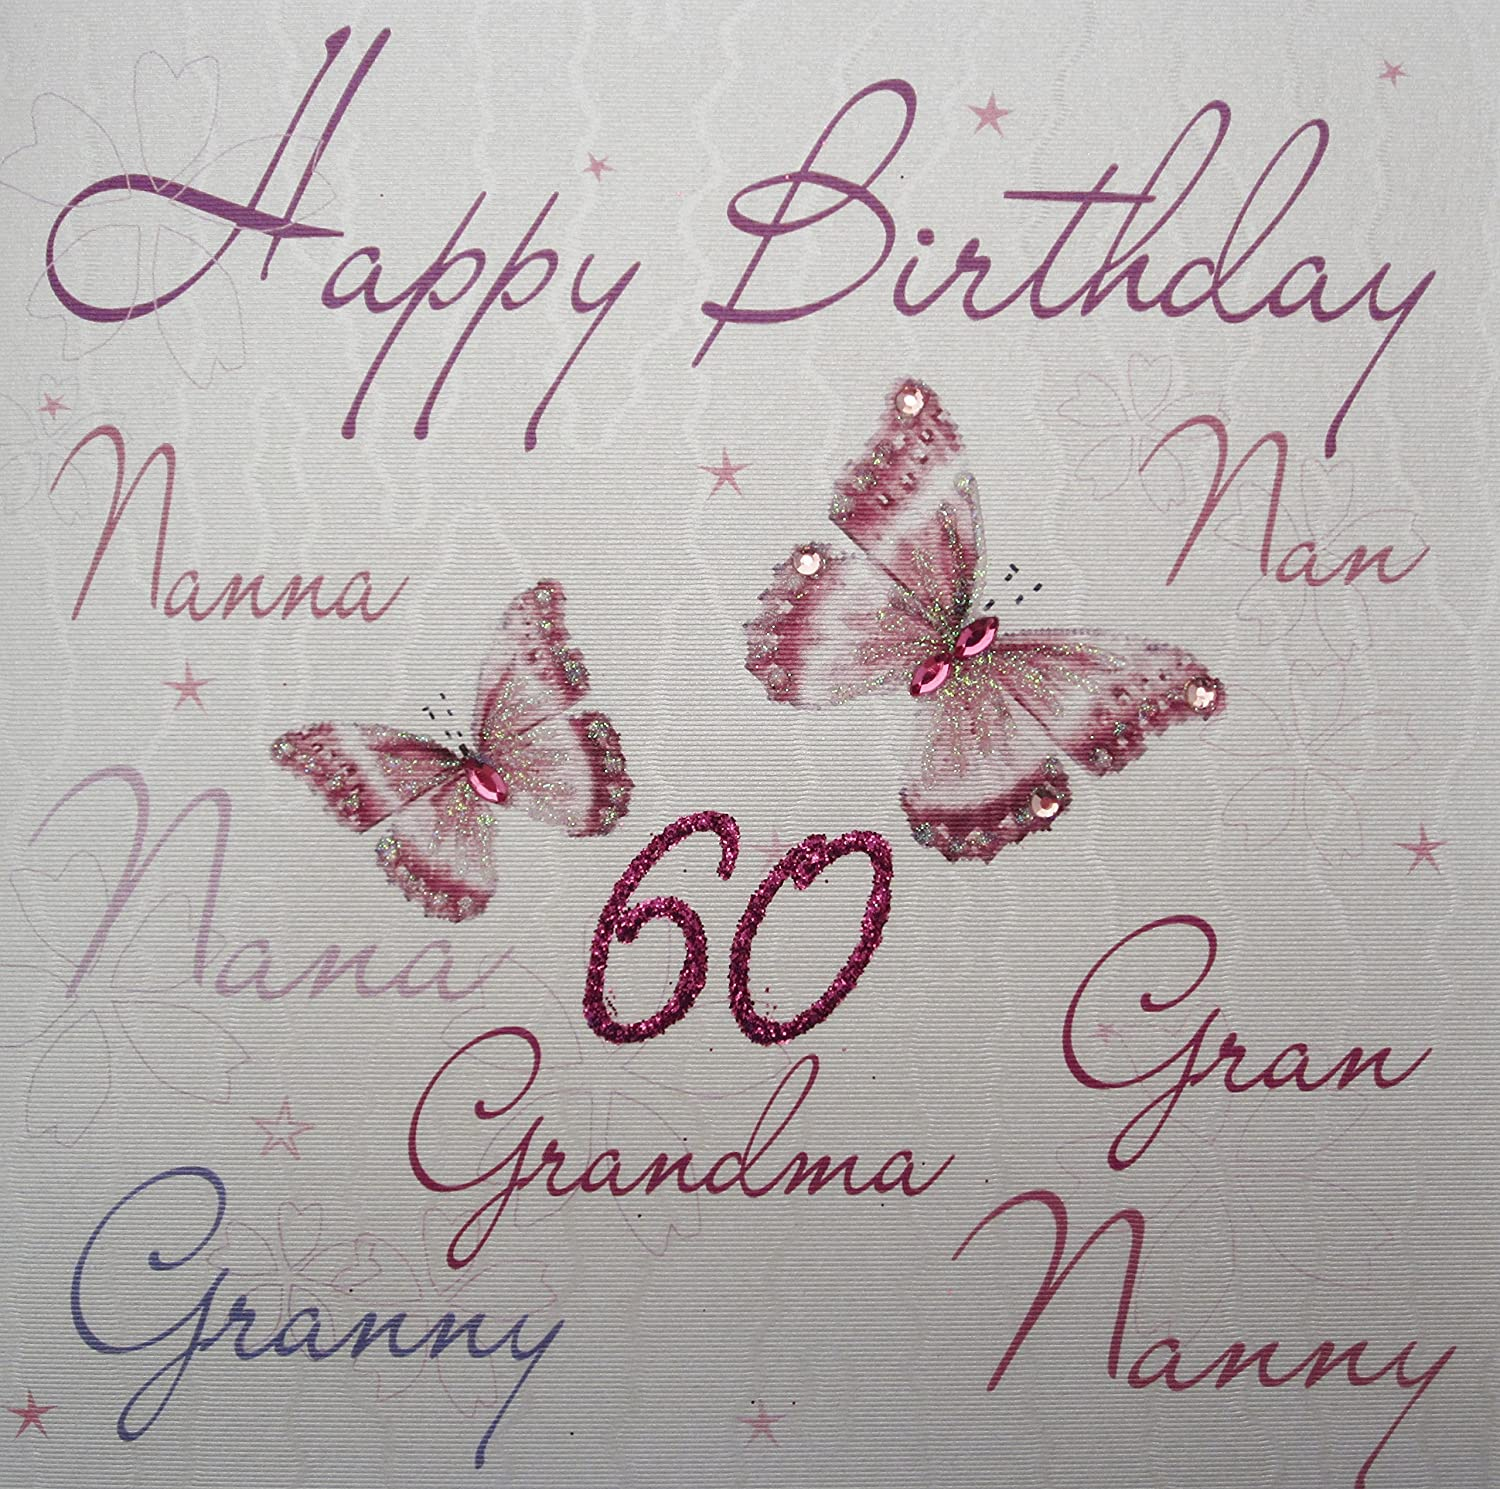 White cotton cards wb125 60 nannanannanagrangrannynanny white cotton cards wb125 60 nannanannanagrangrannynannygrandma happy birthday 60 handmade 60th birthday card white amazon kitchen home bookmarktalkfo Image collections